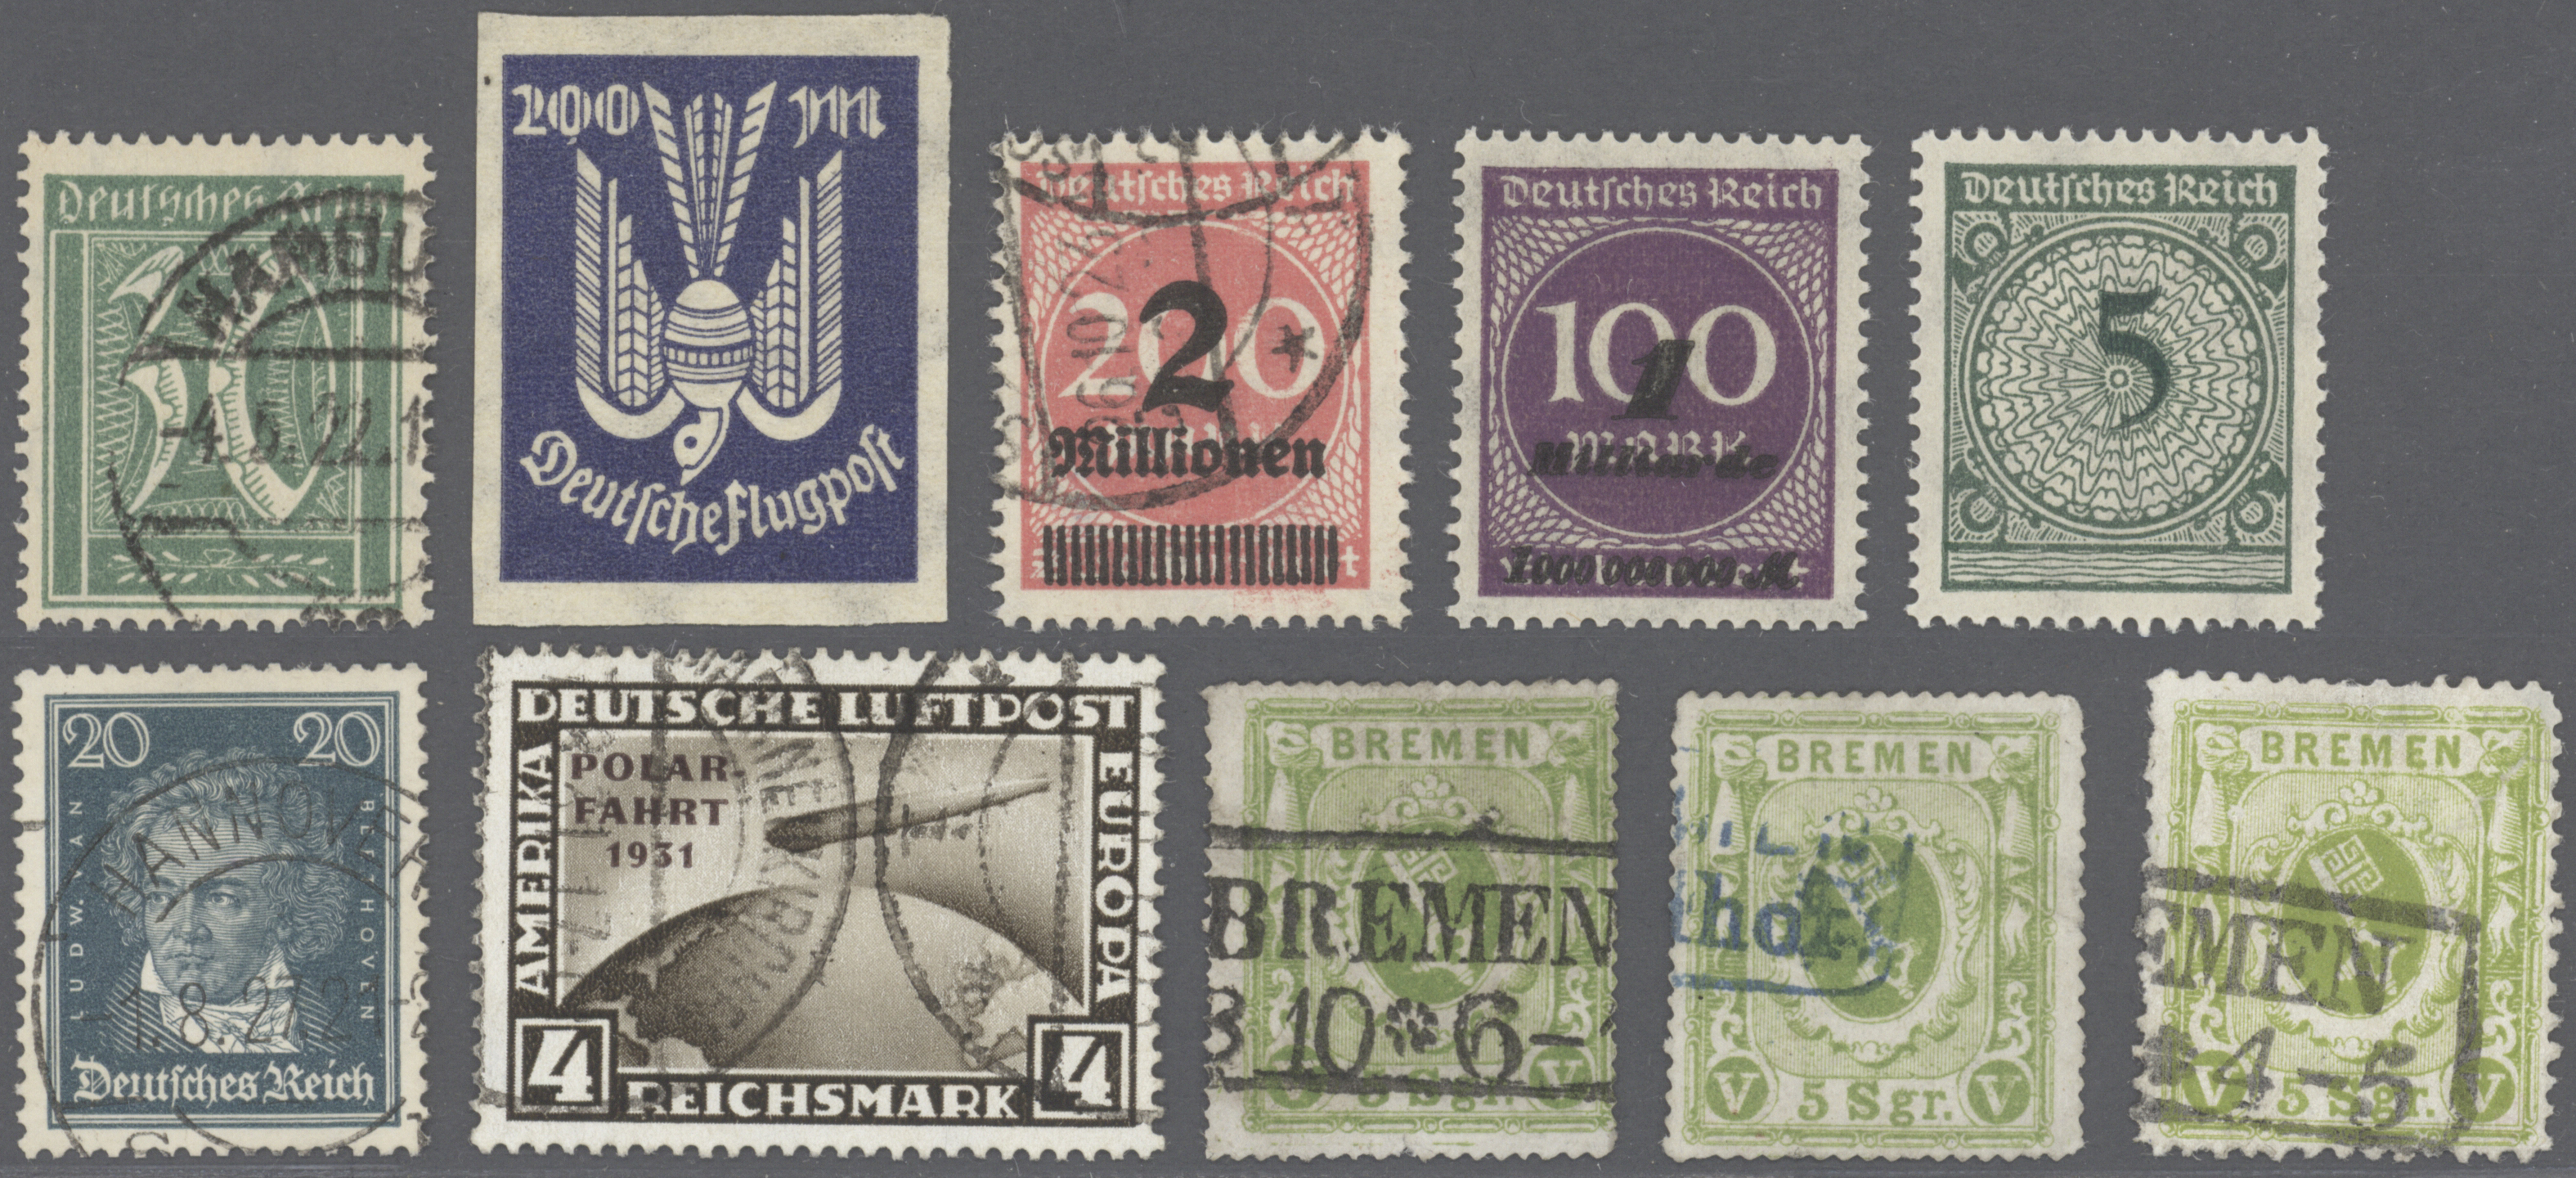 Lot 36438 - Deutsches Reich  -  Auktionshaus Christoph Gärtner GmbH & Co. KG Sale #44 Collections Germany